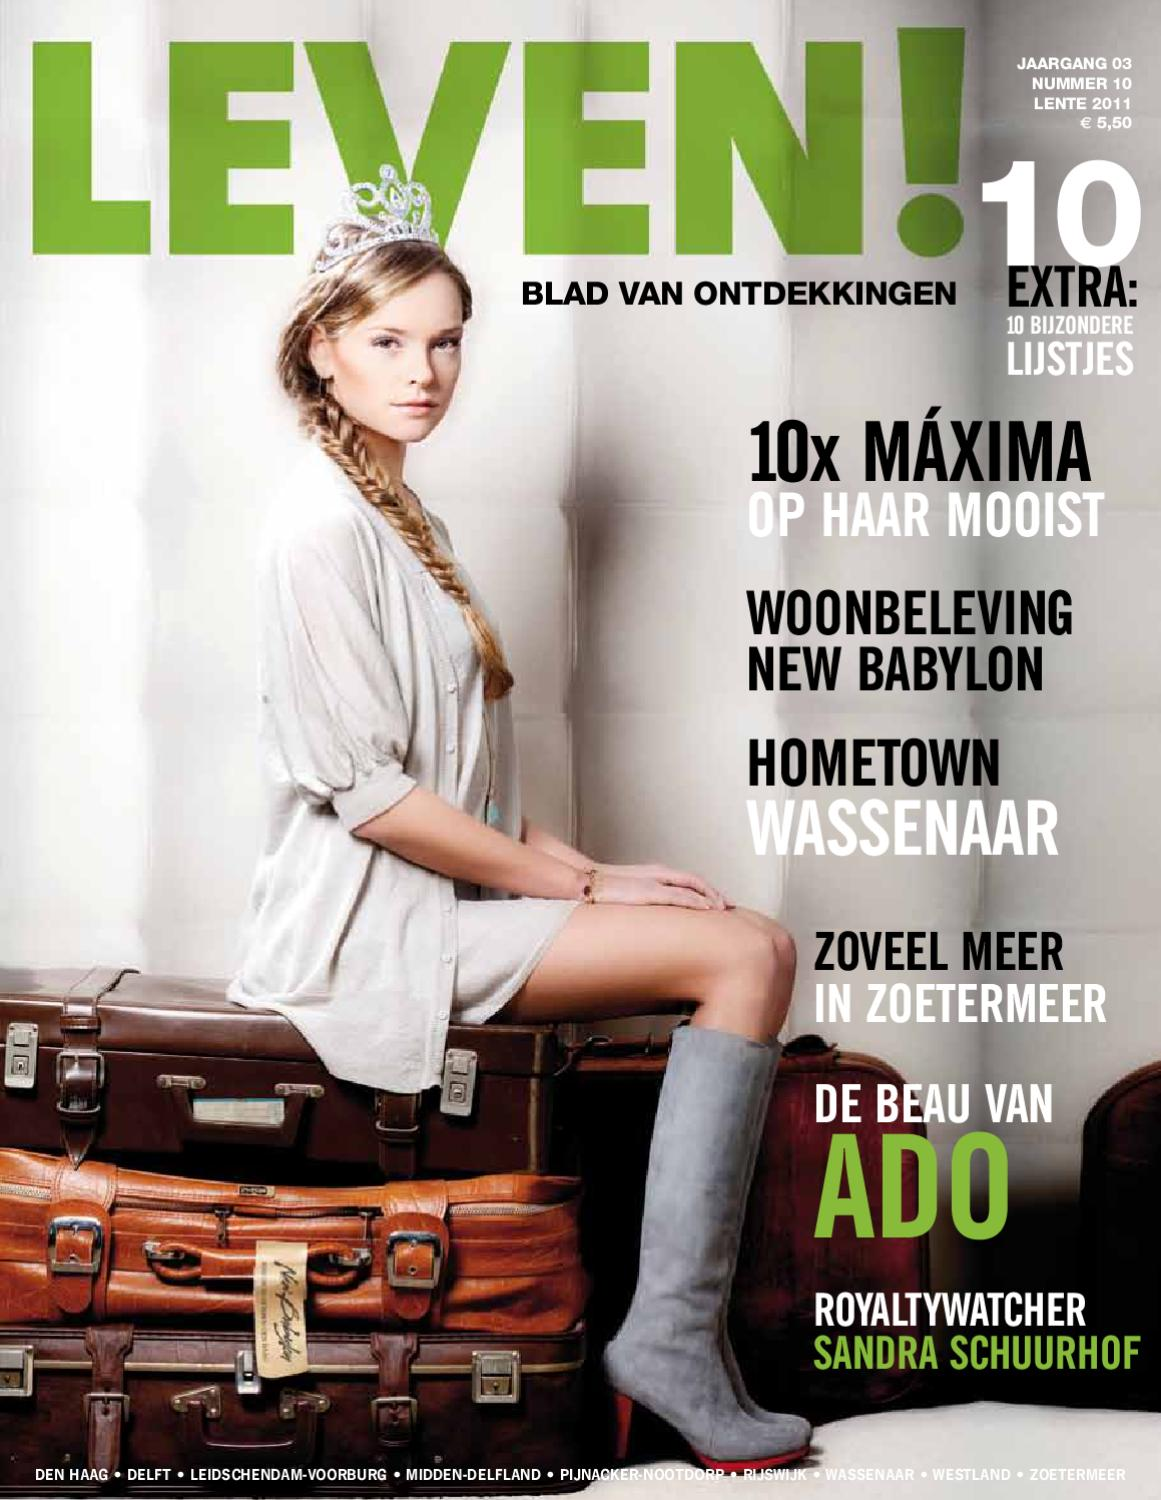 Leven! den haag #10 by zabriski media   issuu